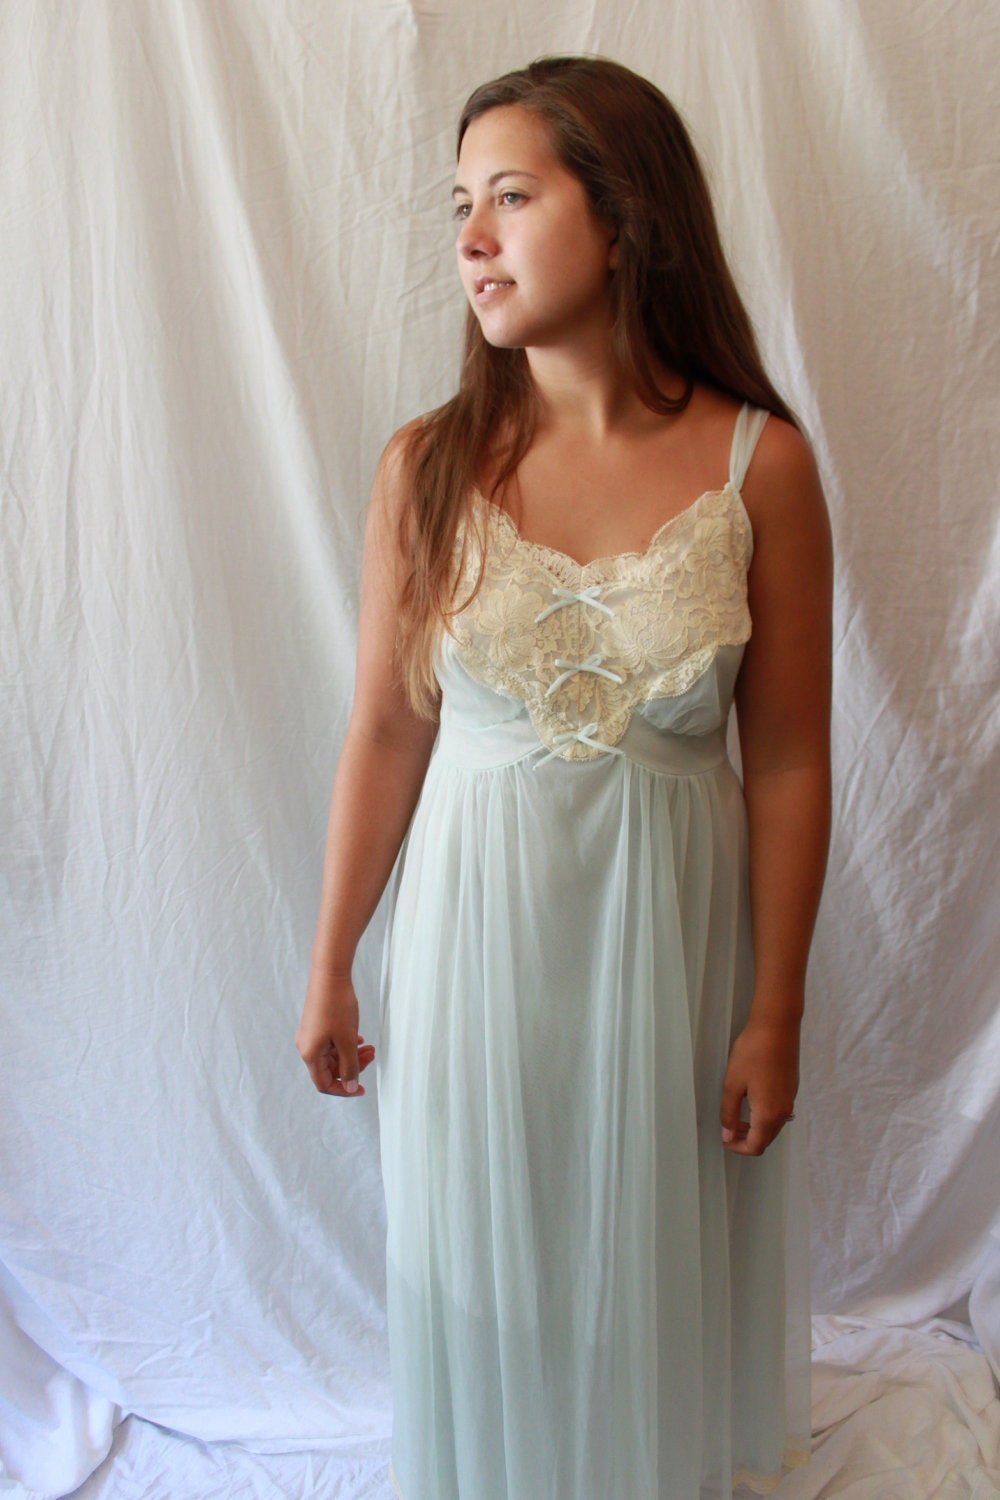 Vintage Lace Nightgown My Gotham Lingerie Sheer Nighty-2892